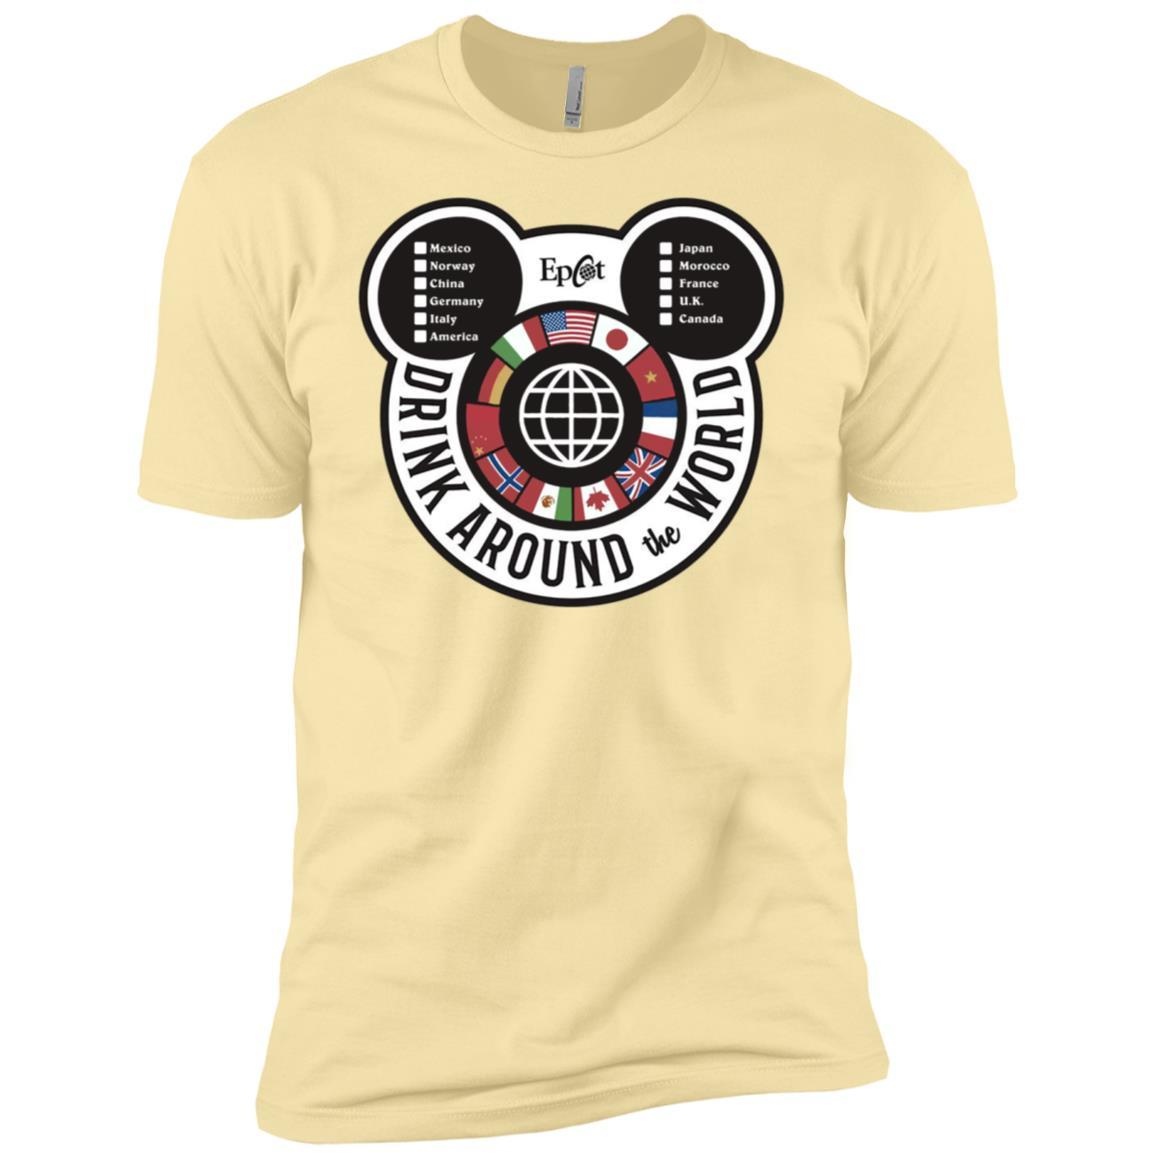 Drink Around the World - EPCOT Checklist - Short Sleeve T-Shirt Banana Cream / 3XL